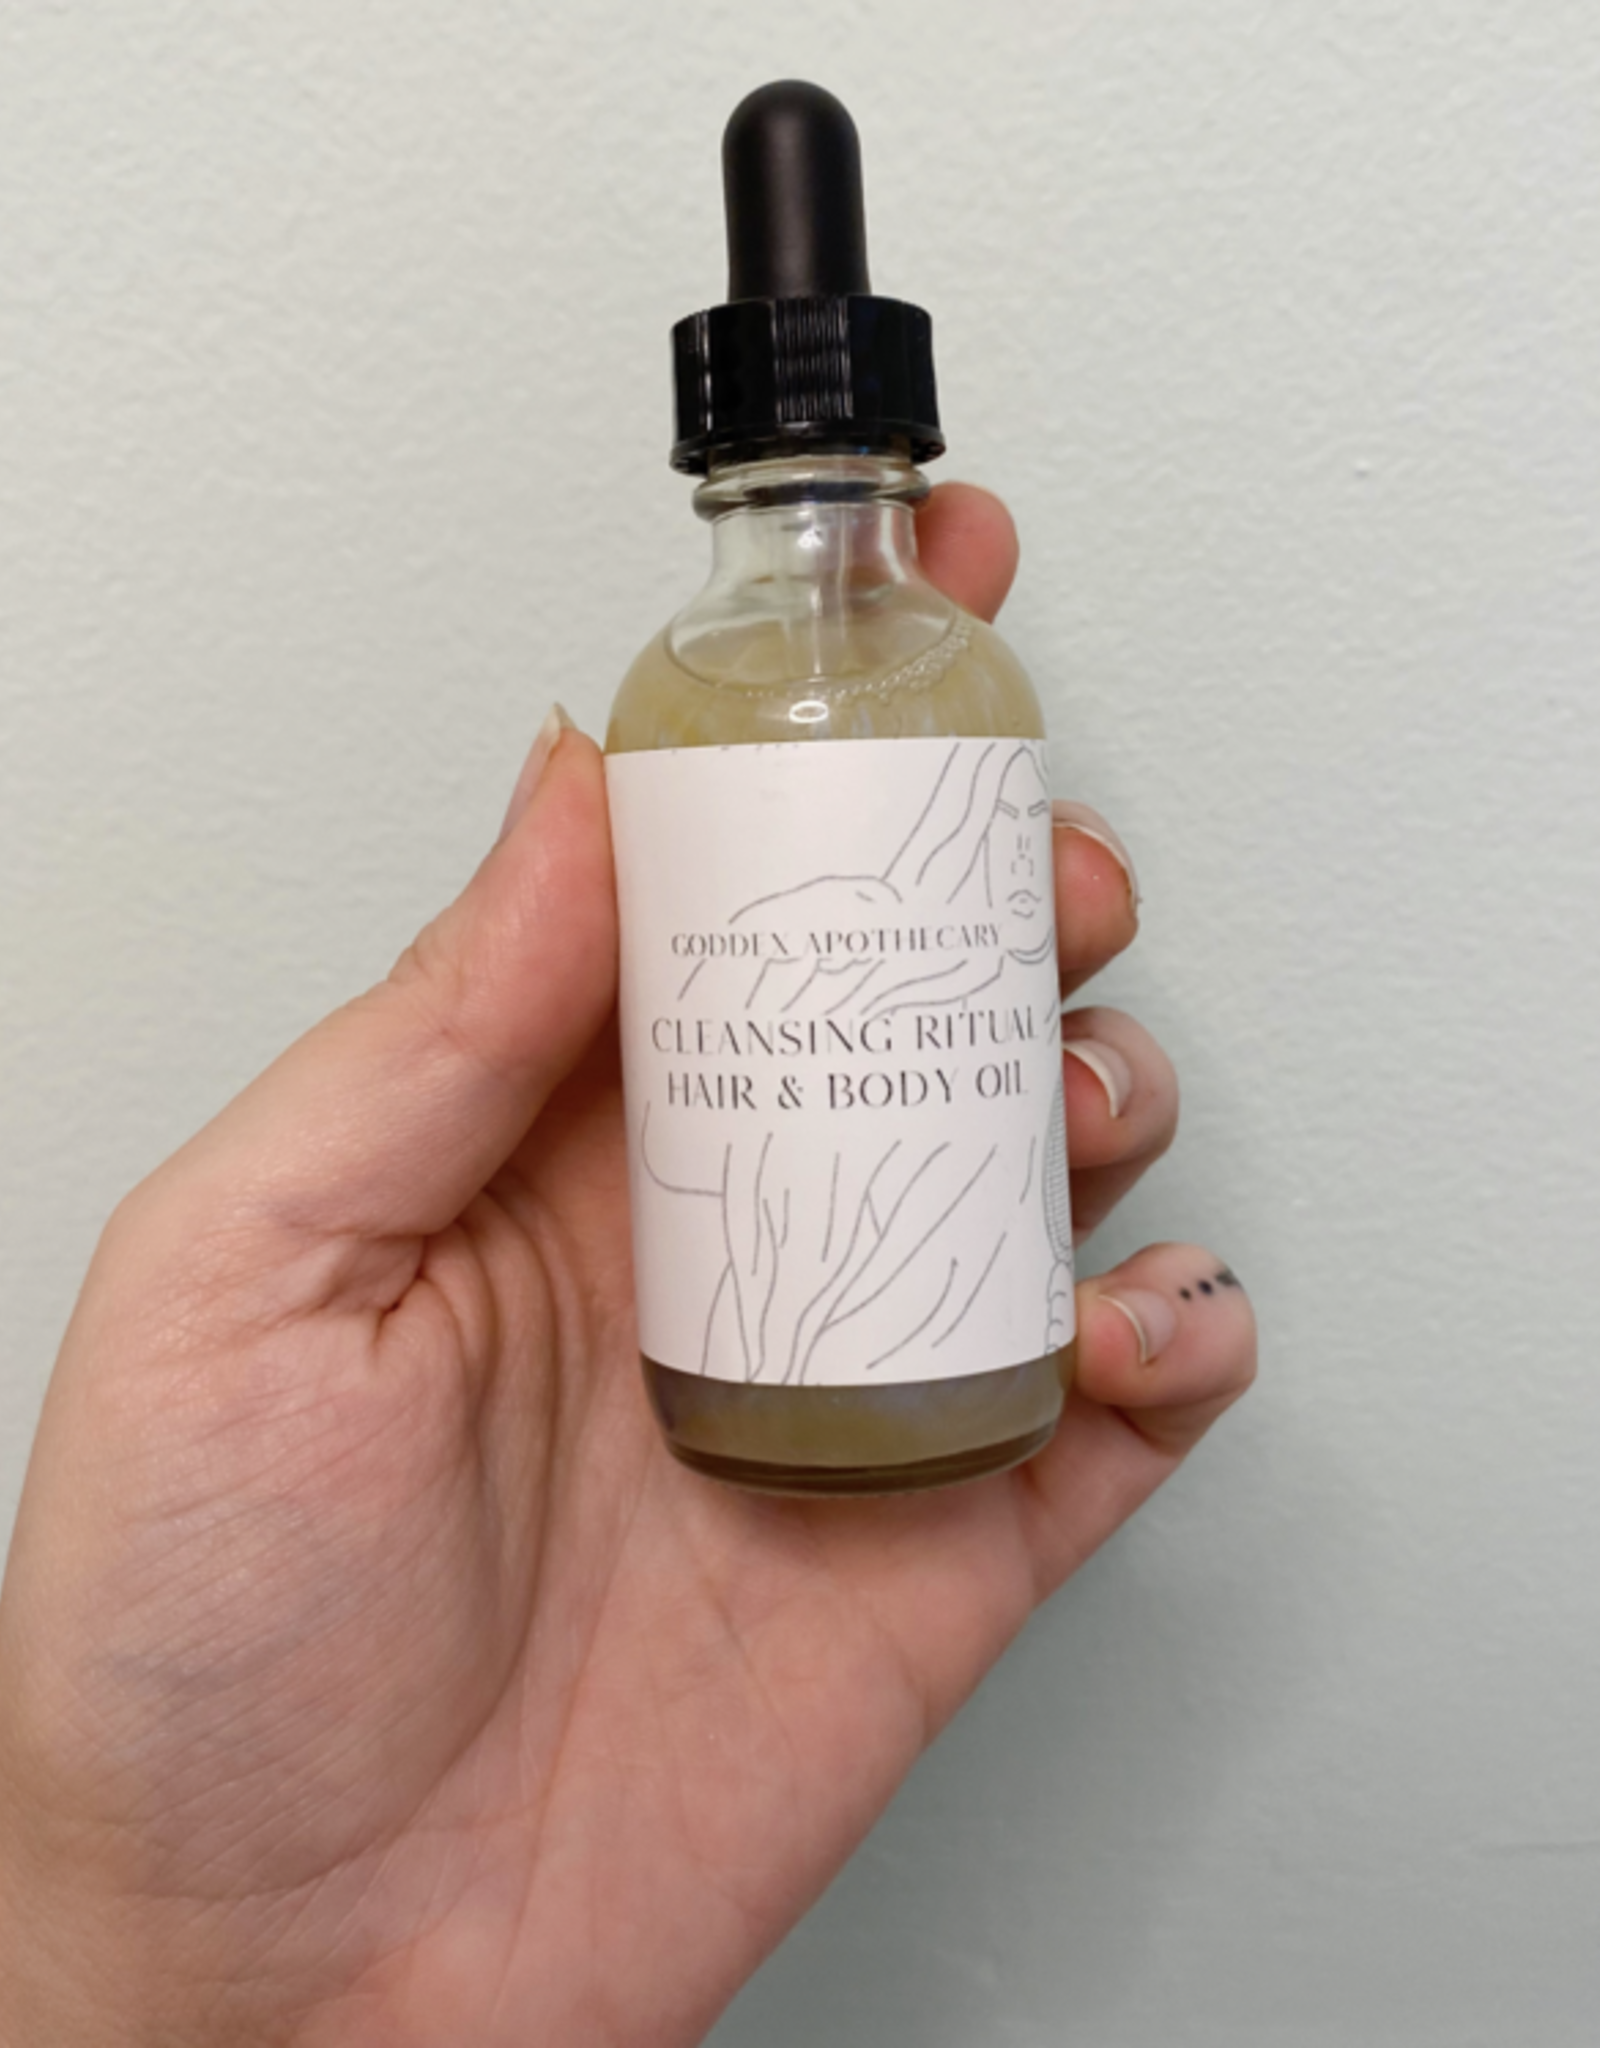 Goddex Apothecary Cleansing Ritual Hair and Body Oil